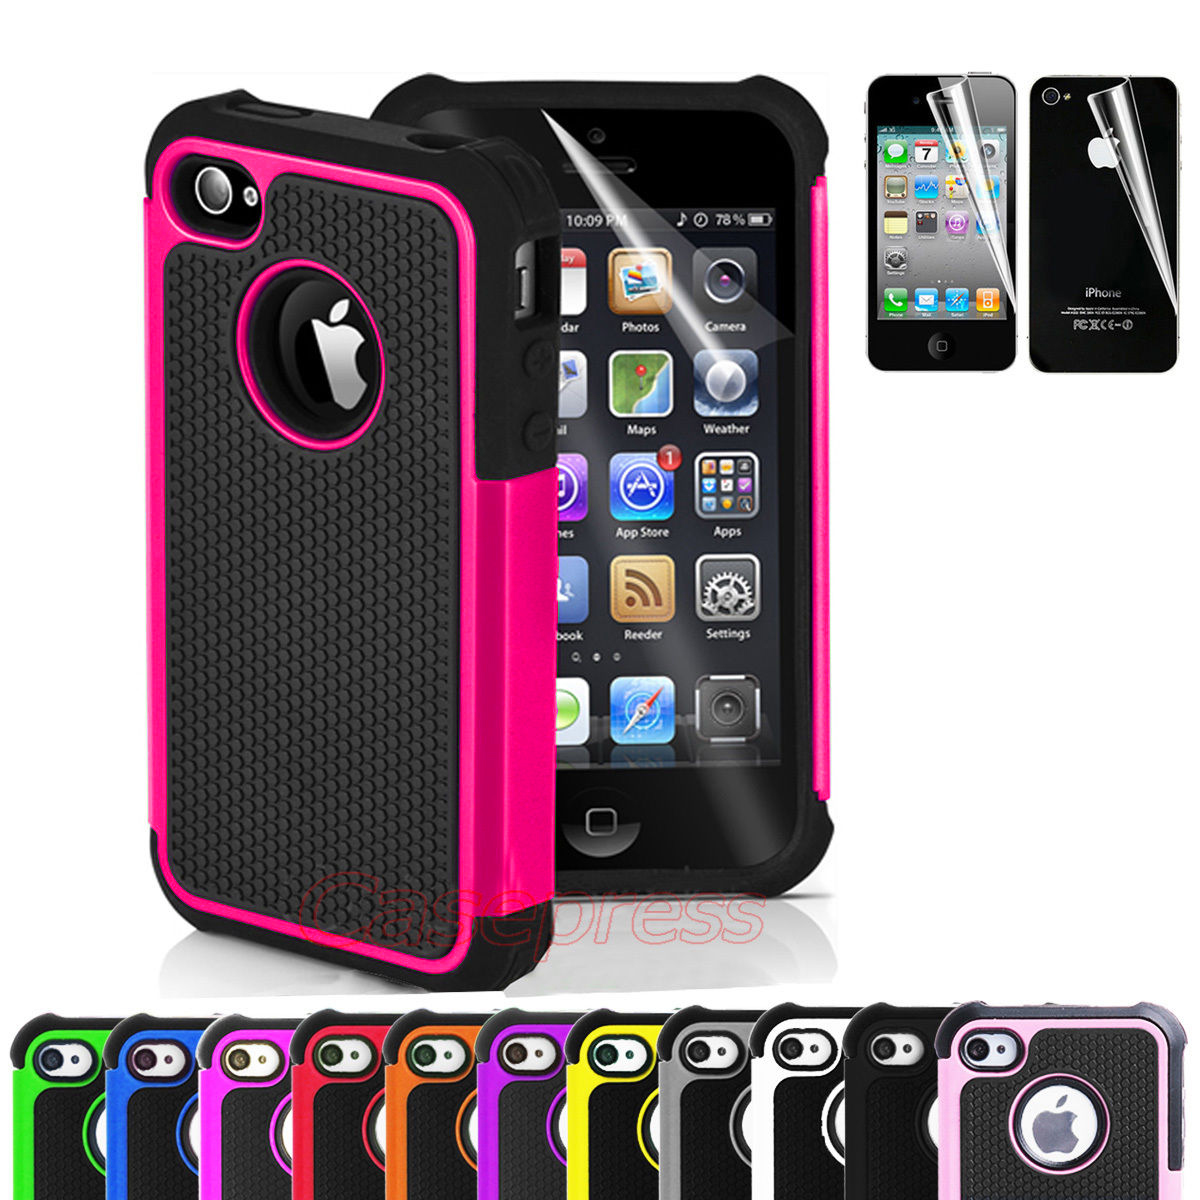 iphone 4 covers for iphone 4 4s black rugged rubber matte 10850